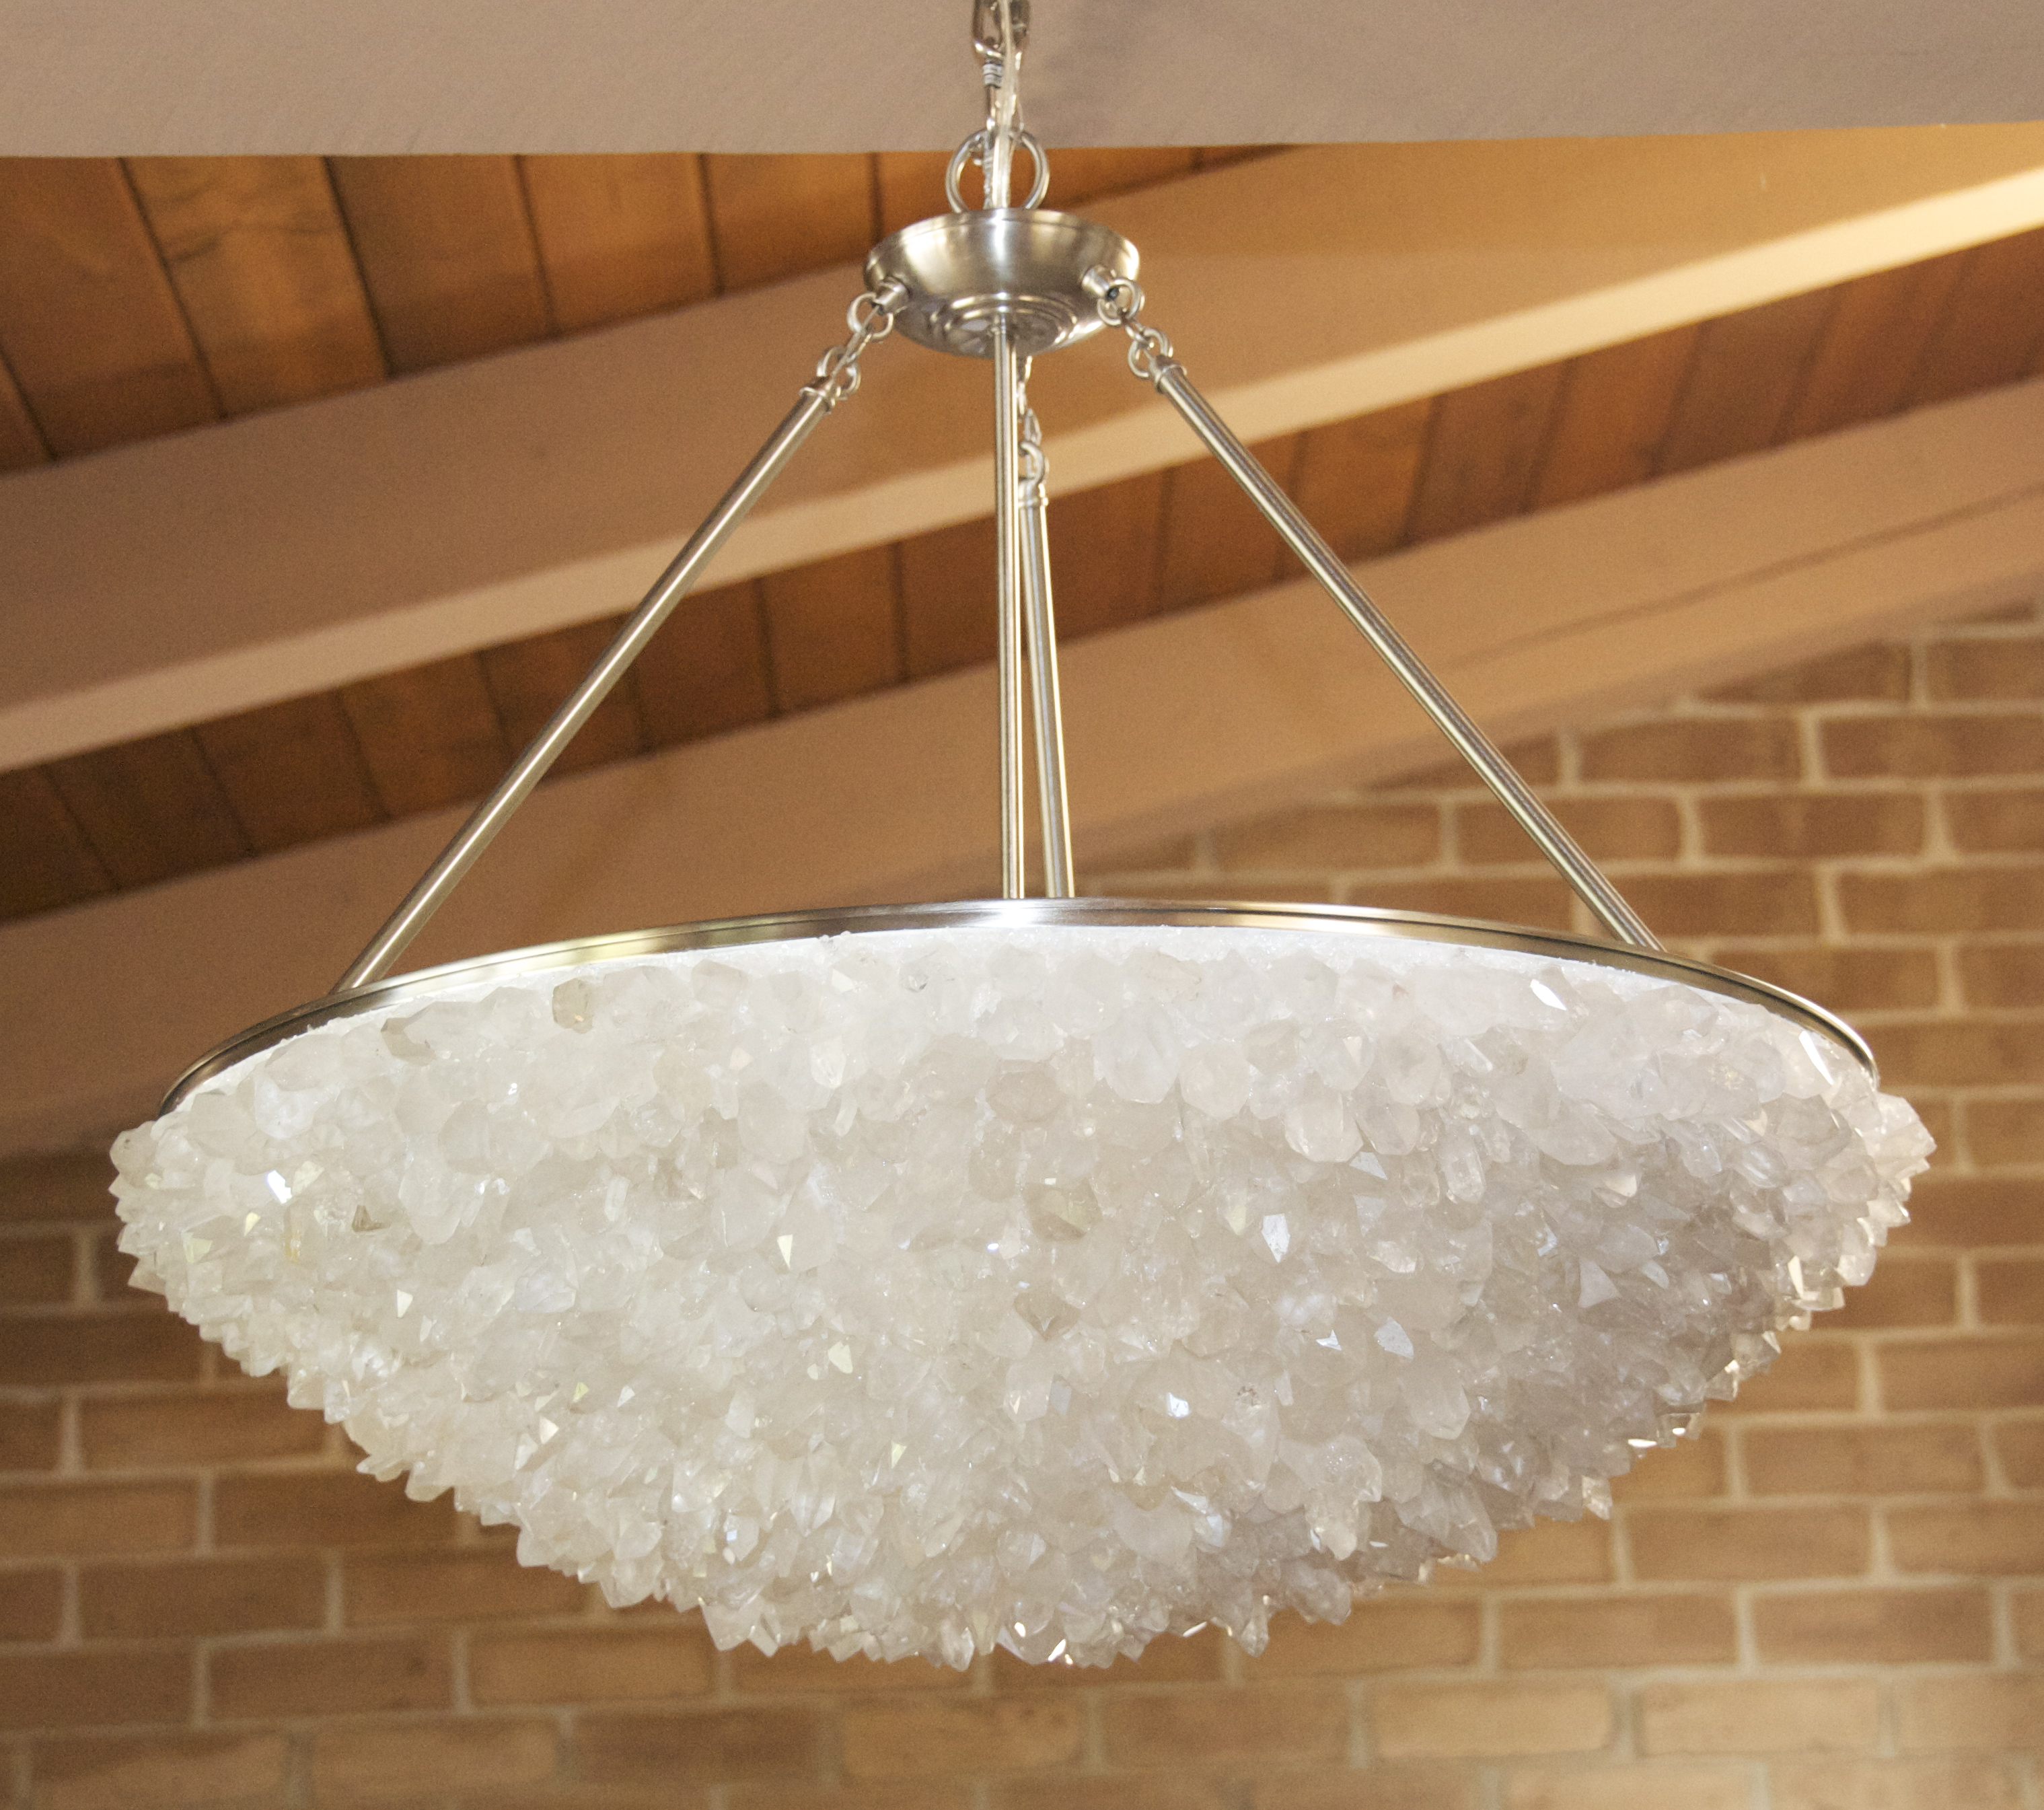 KATHRYN-MCCOY-DESIGN-CLEAR-QUARTZ-CEILING-PENDANT-2